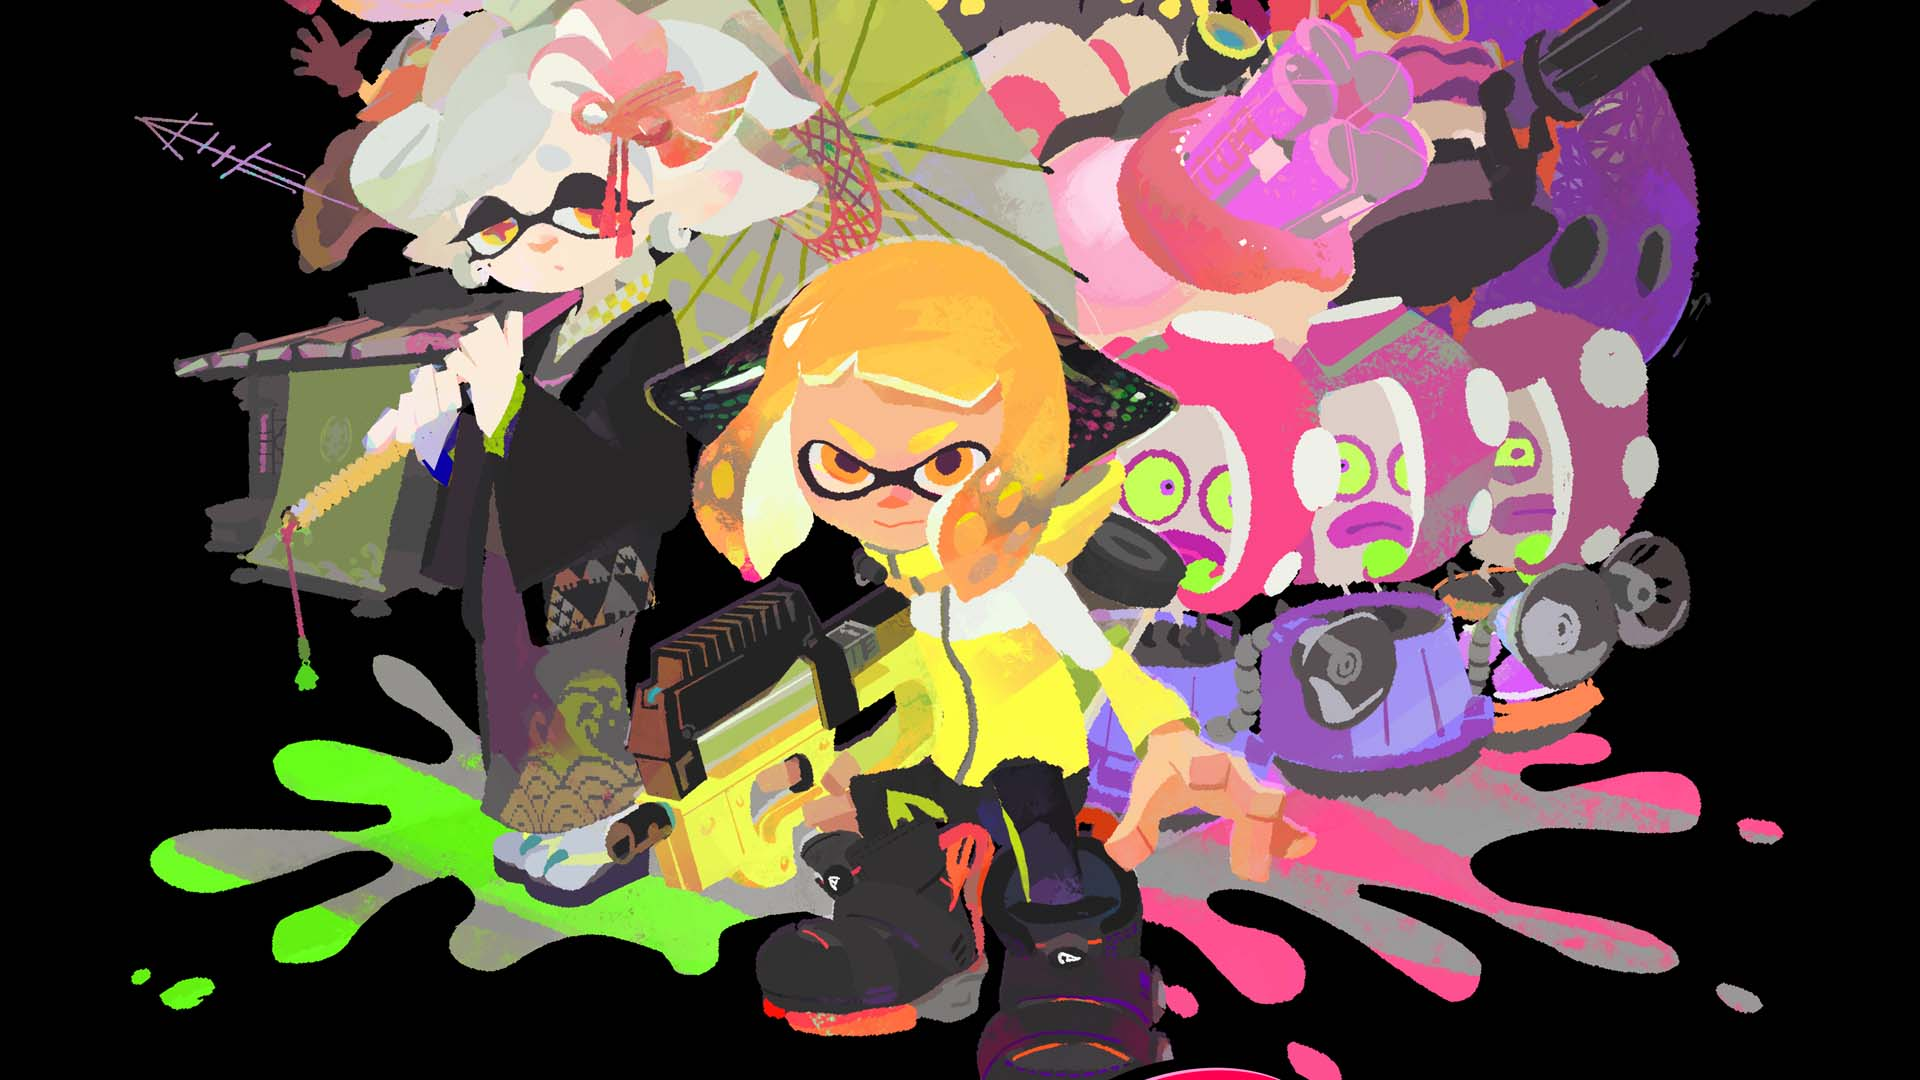 Two Girls Wallpaper Splatoon 2 S Single Player Campaign Gets An Ink Redible